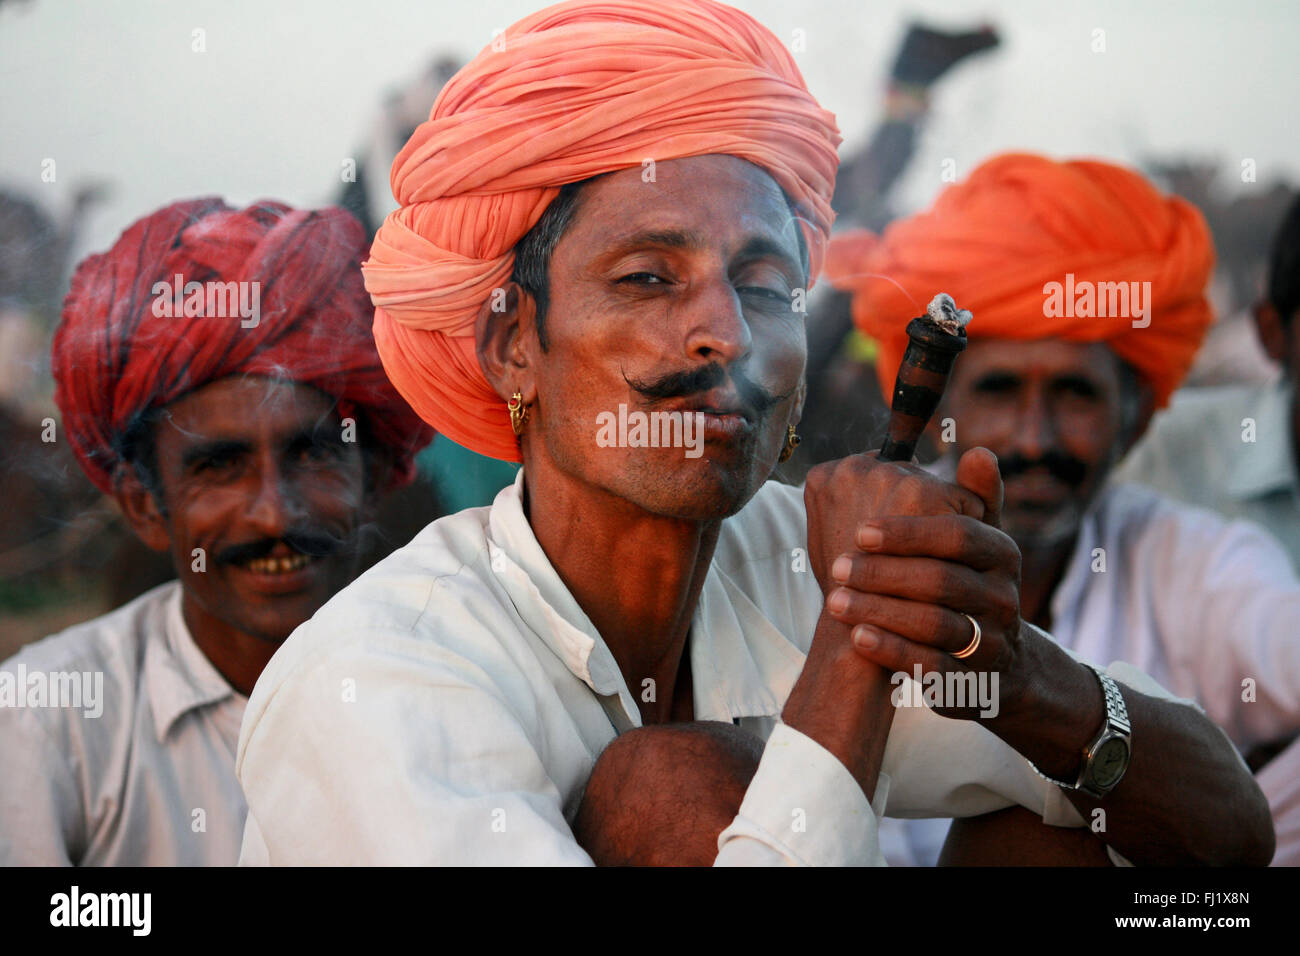 hindu single men in north franklin Dating and marriage customs in northern india 26th january 2006 india has much diversity in terms of cultures and religions dating habits differ widely in all these areas people in north.